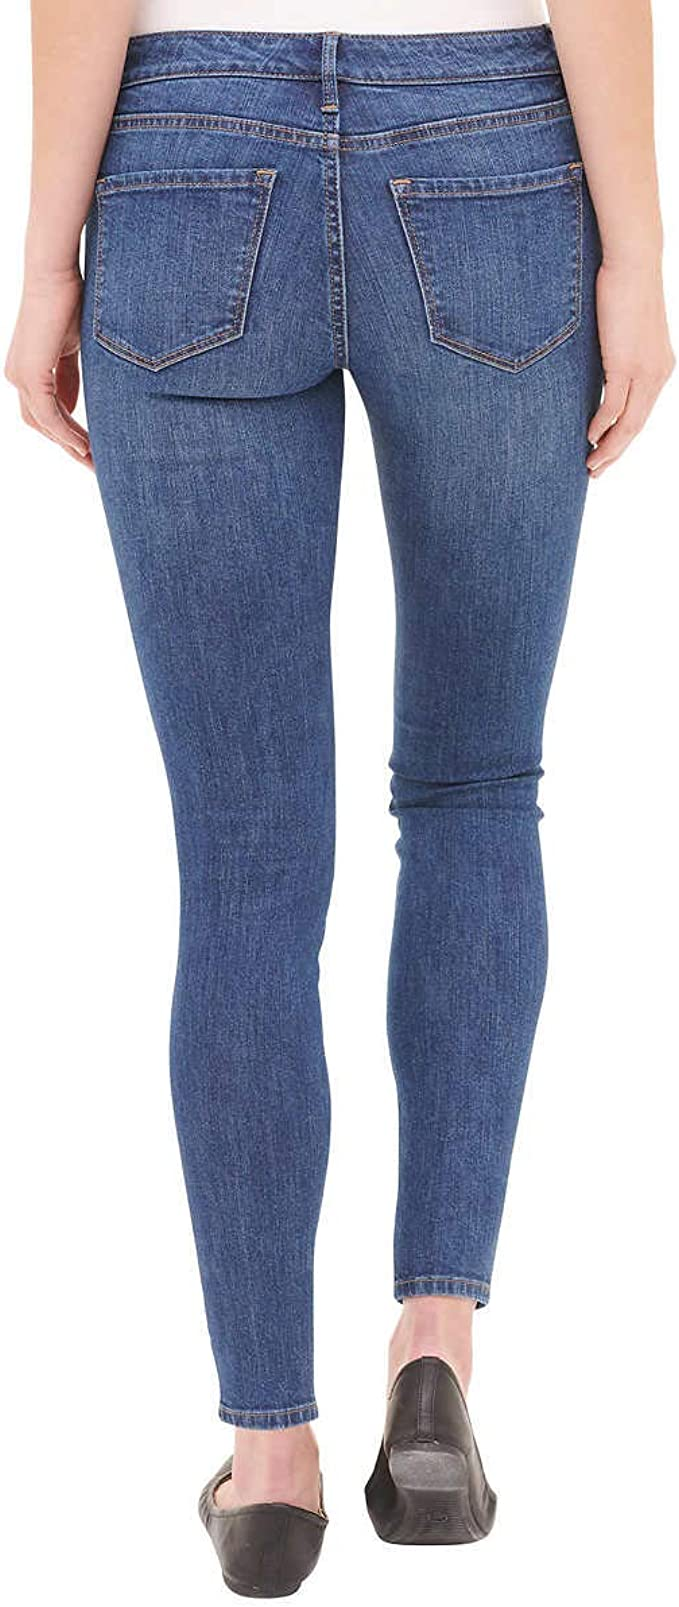 Erradicar Surgir El respeto  Tommy Hilfiger Womens Mid Rise Skinny Jeans at Amazon Women's Jeans store